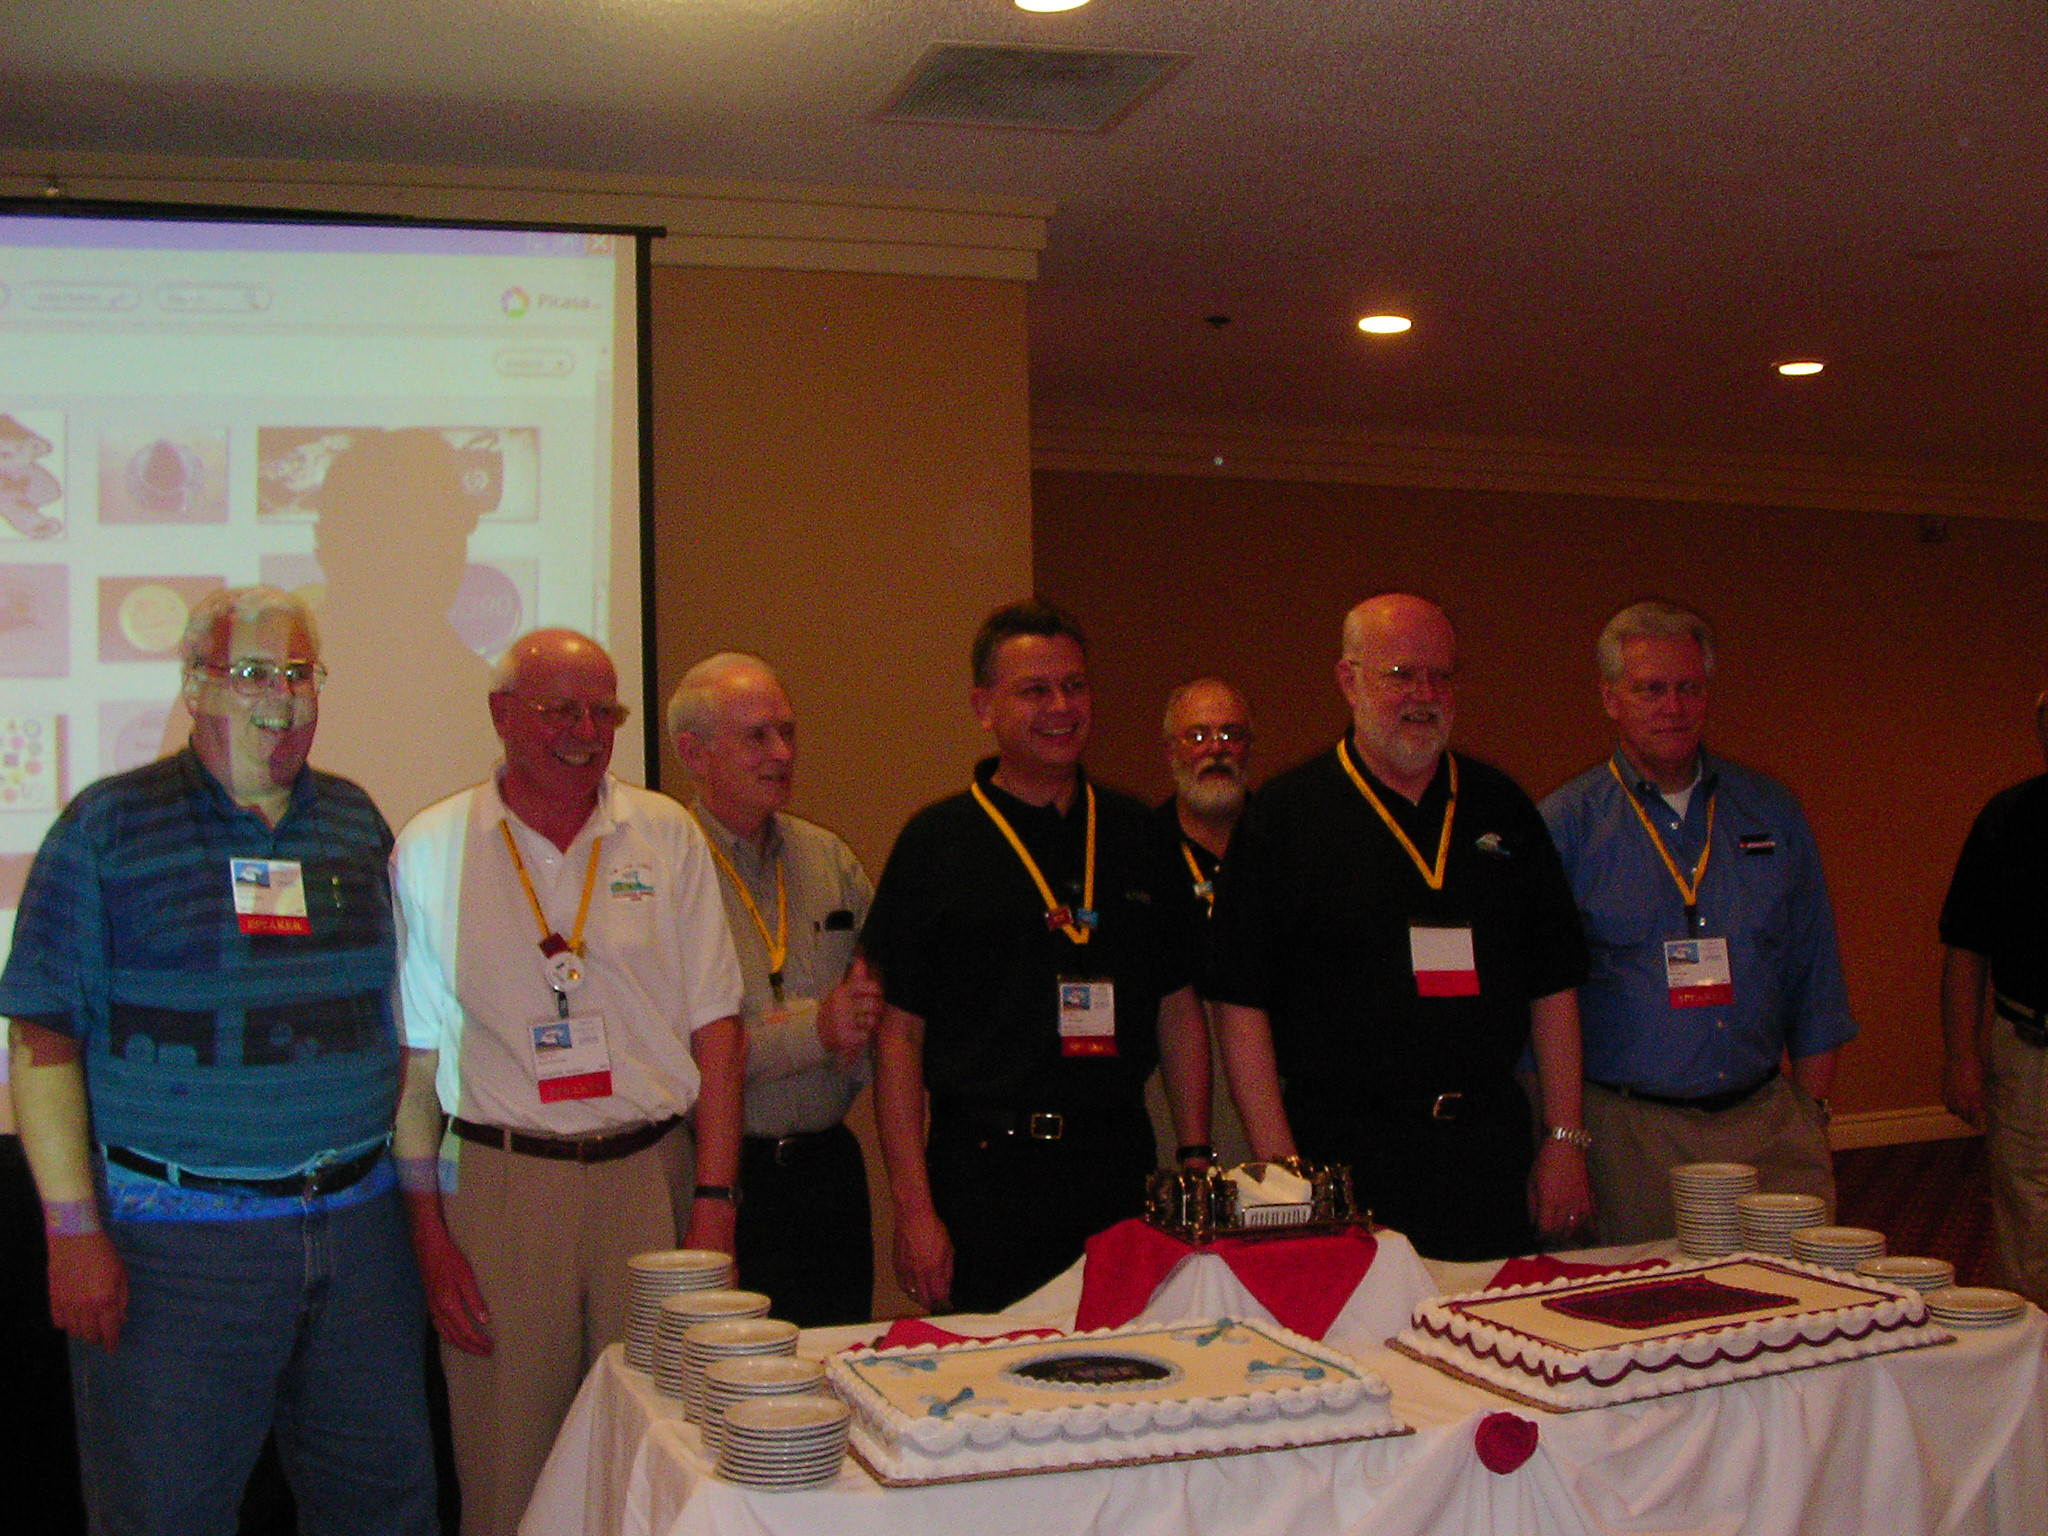 Members of VSE's history prepare to cut the cake.